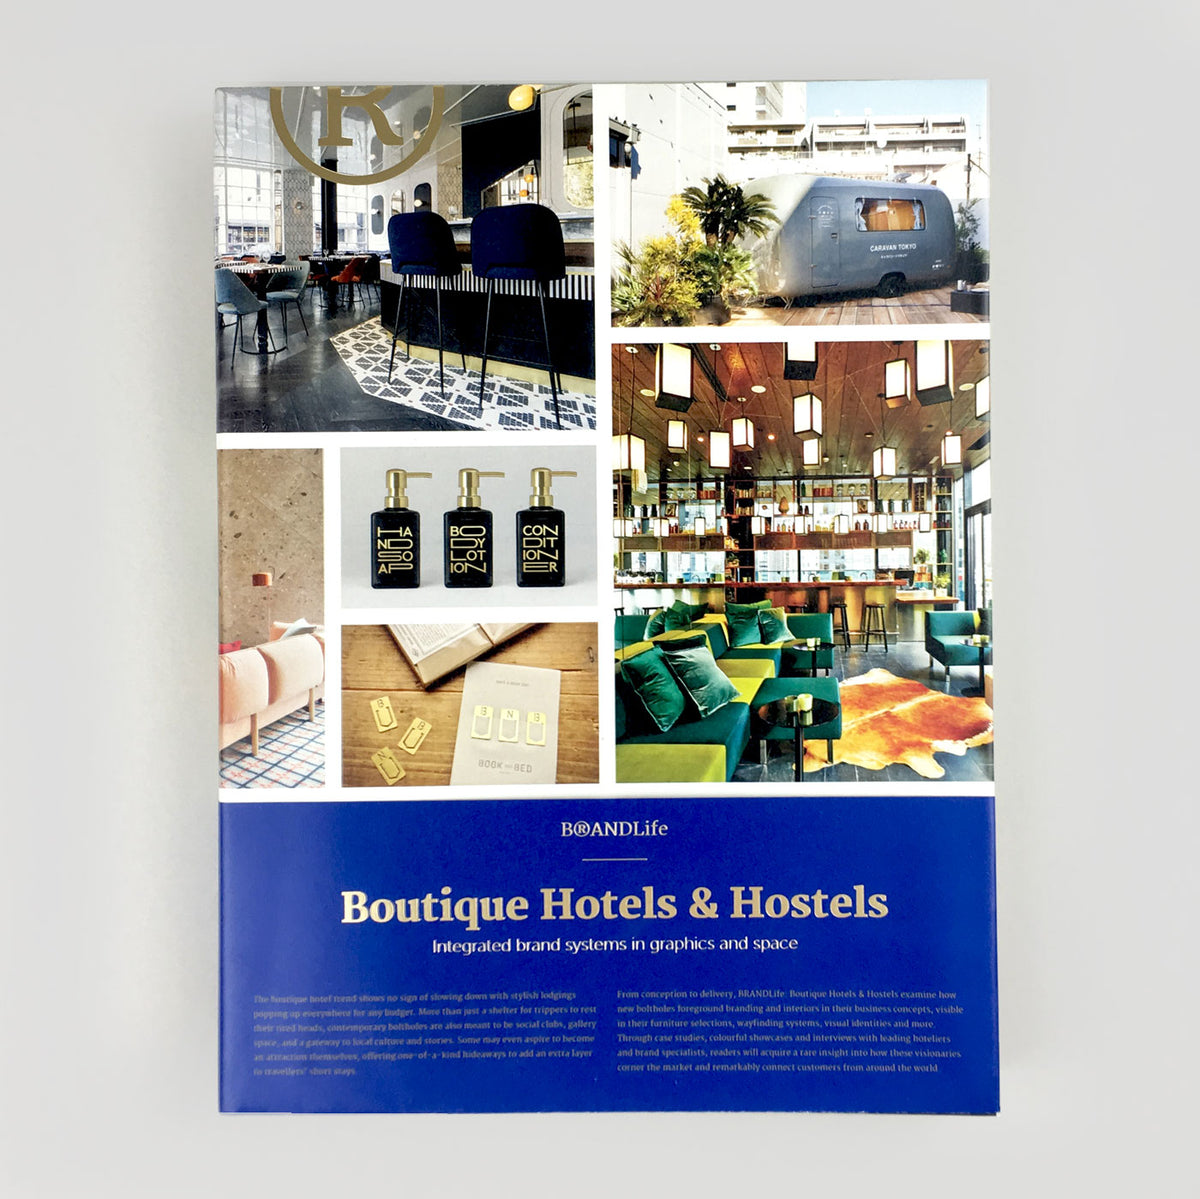 BOUTIQUE HOTELS & HOSTELS BY VICTIONARY